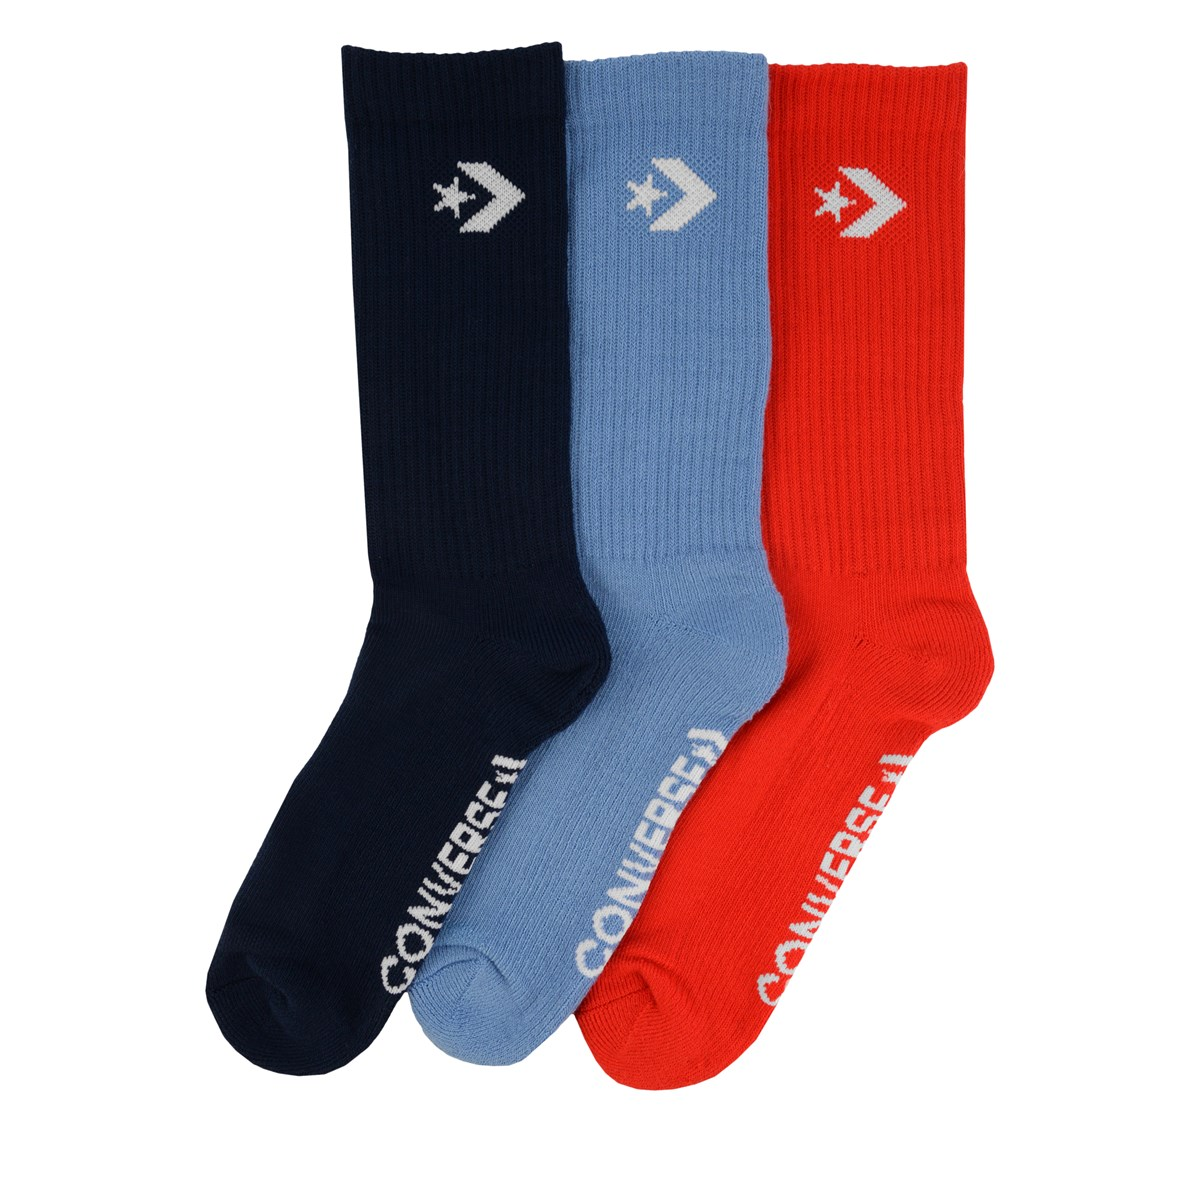 Women's 3 Pair Pack of Classic Star Chevron Socks in Blue